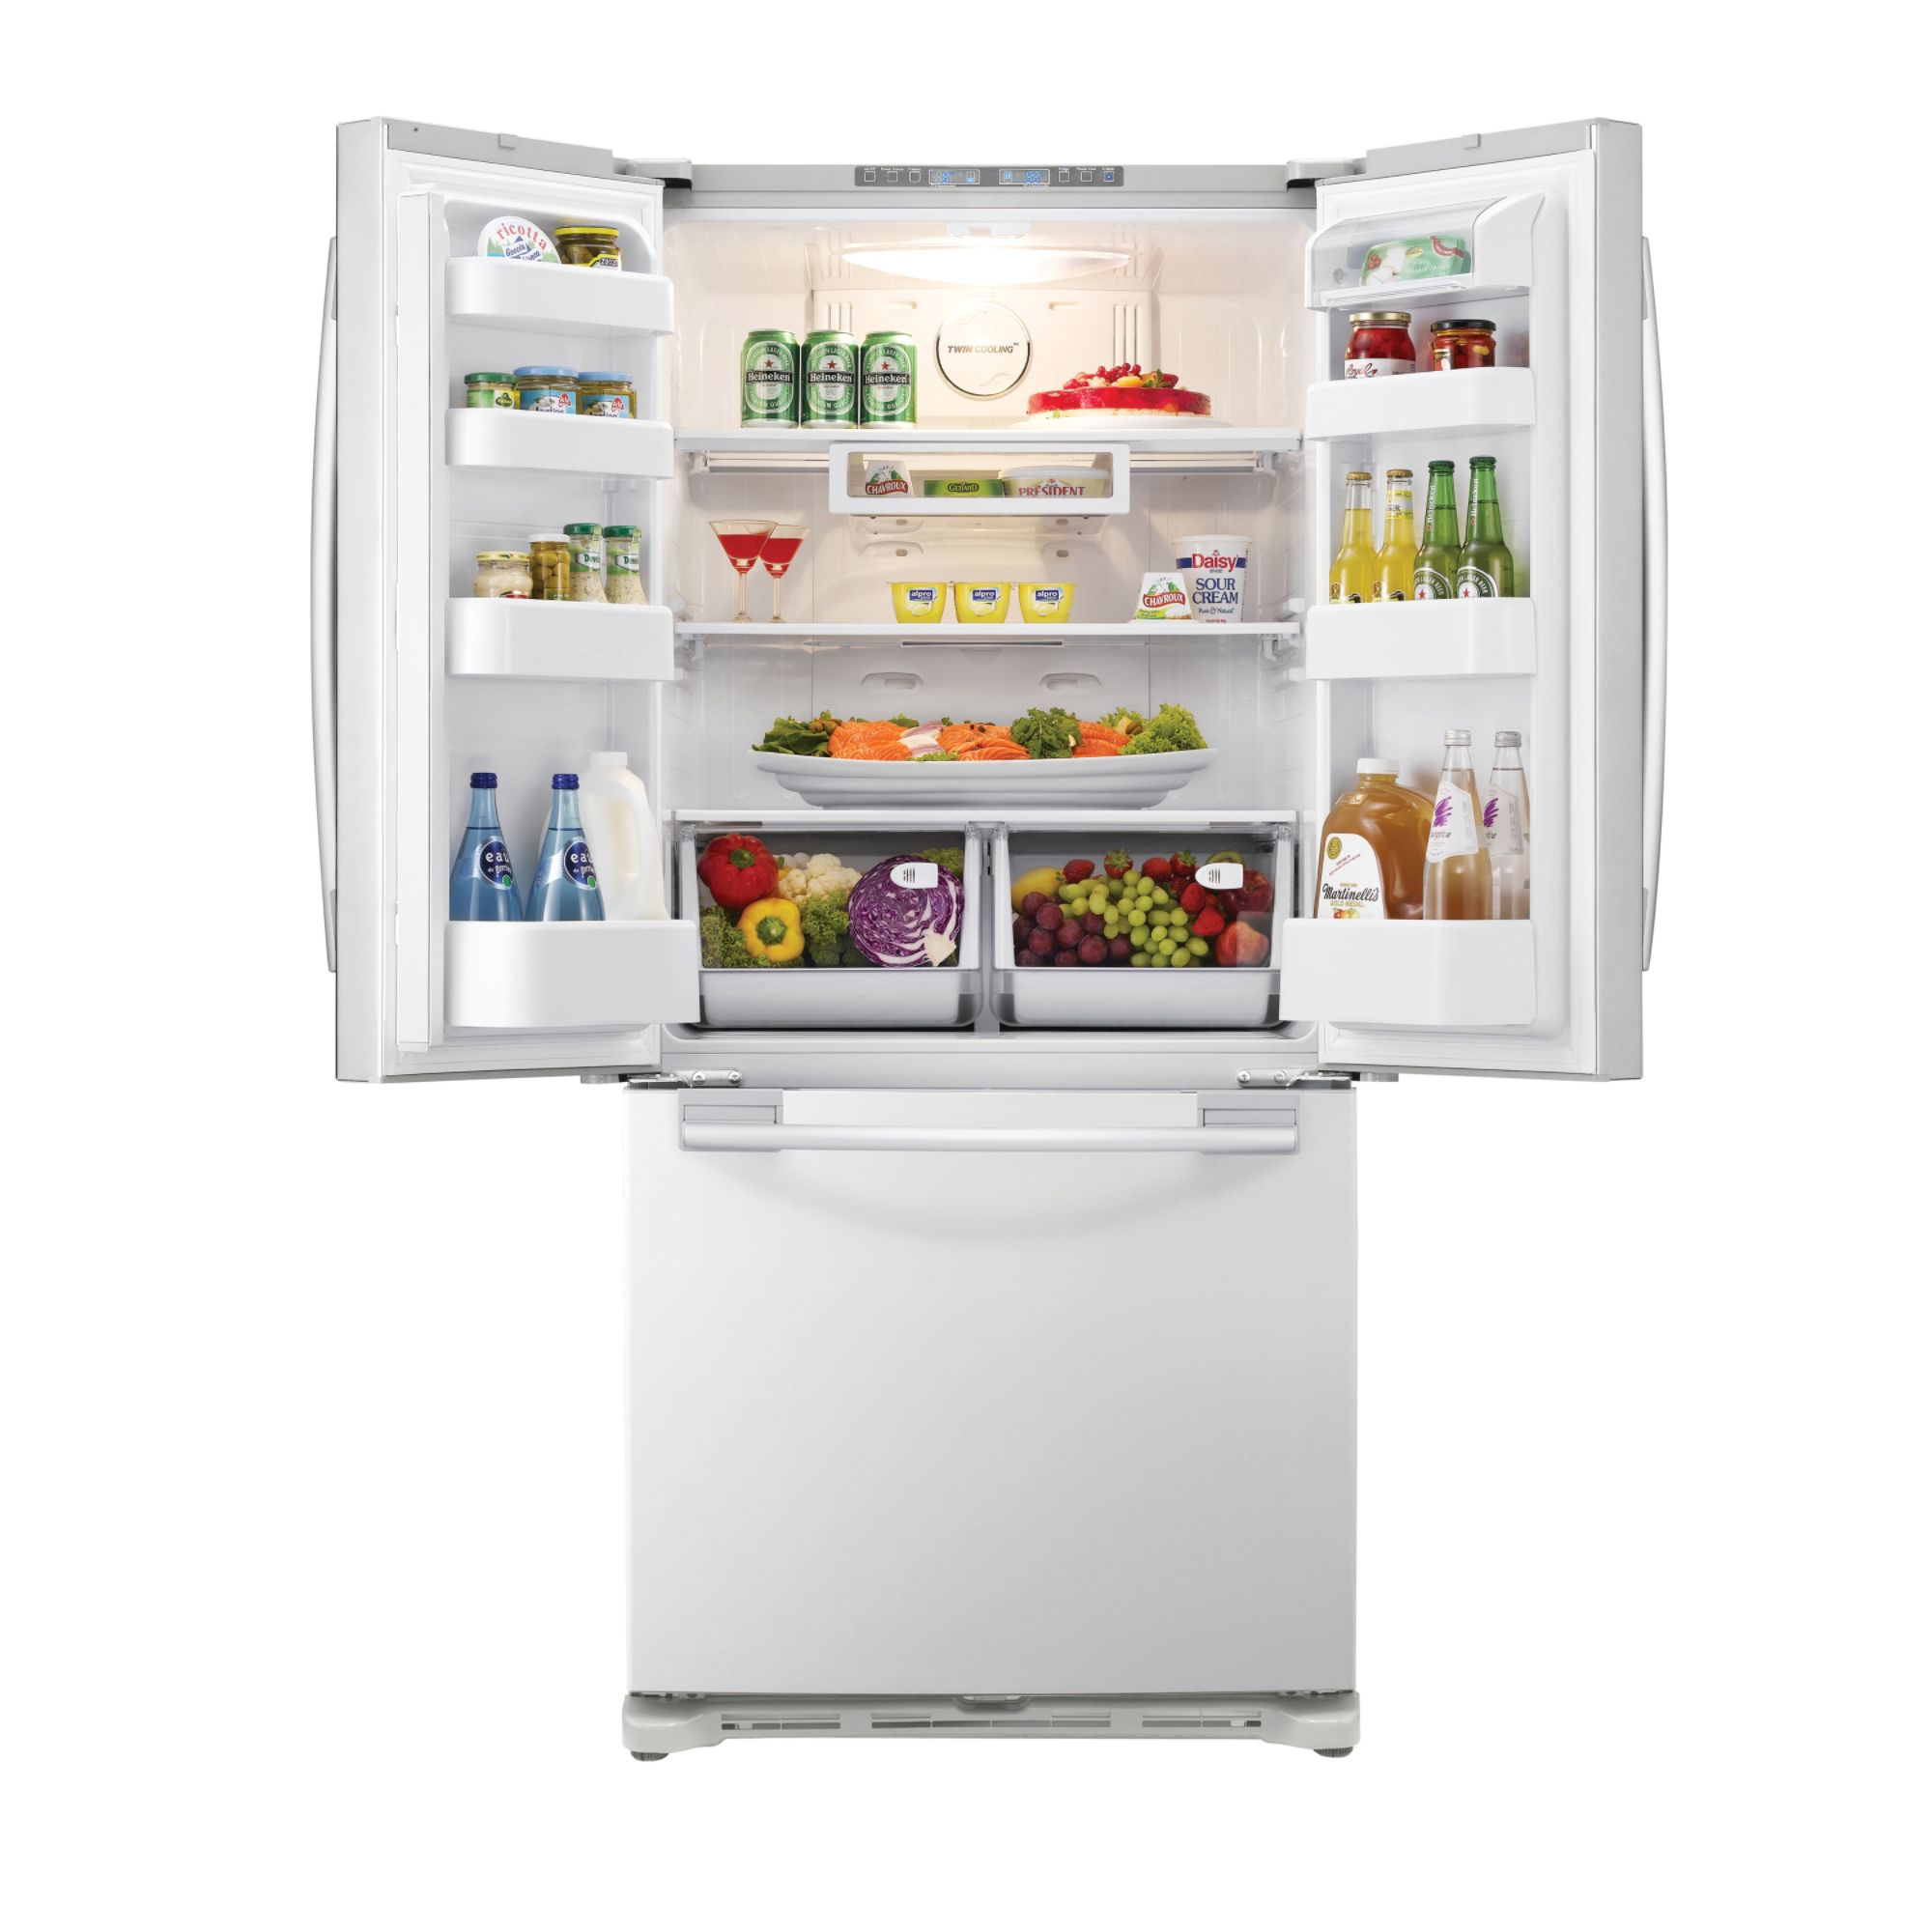 Samsung 18.0 cu. ft. Bottom-Freezer Refrigerator